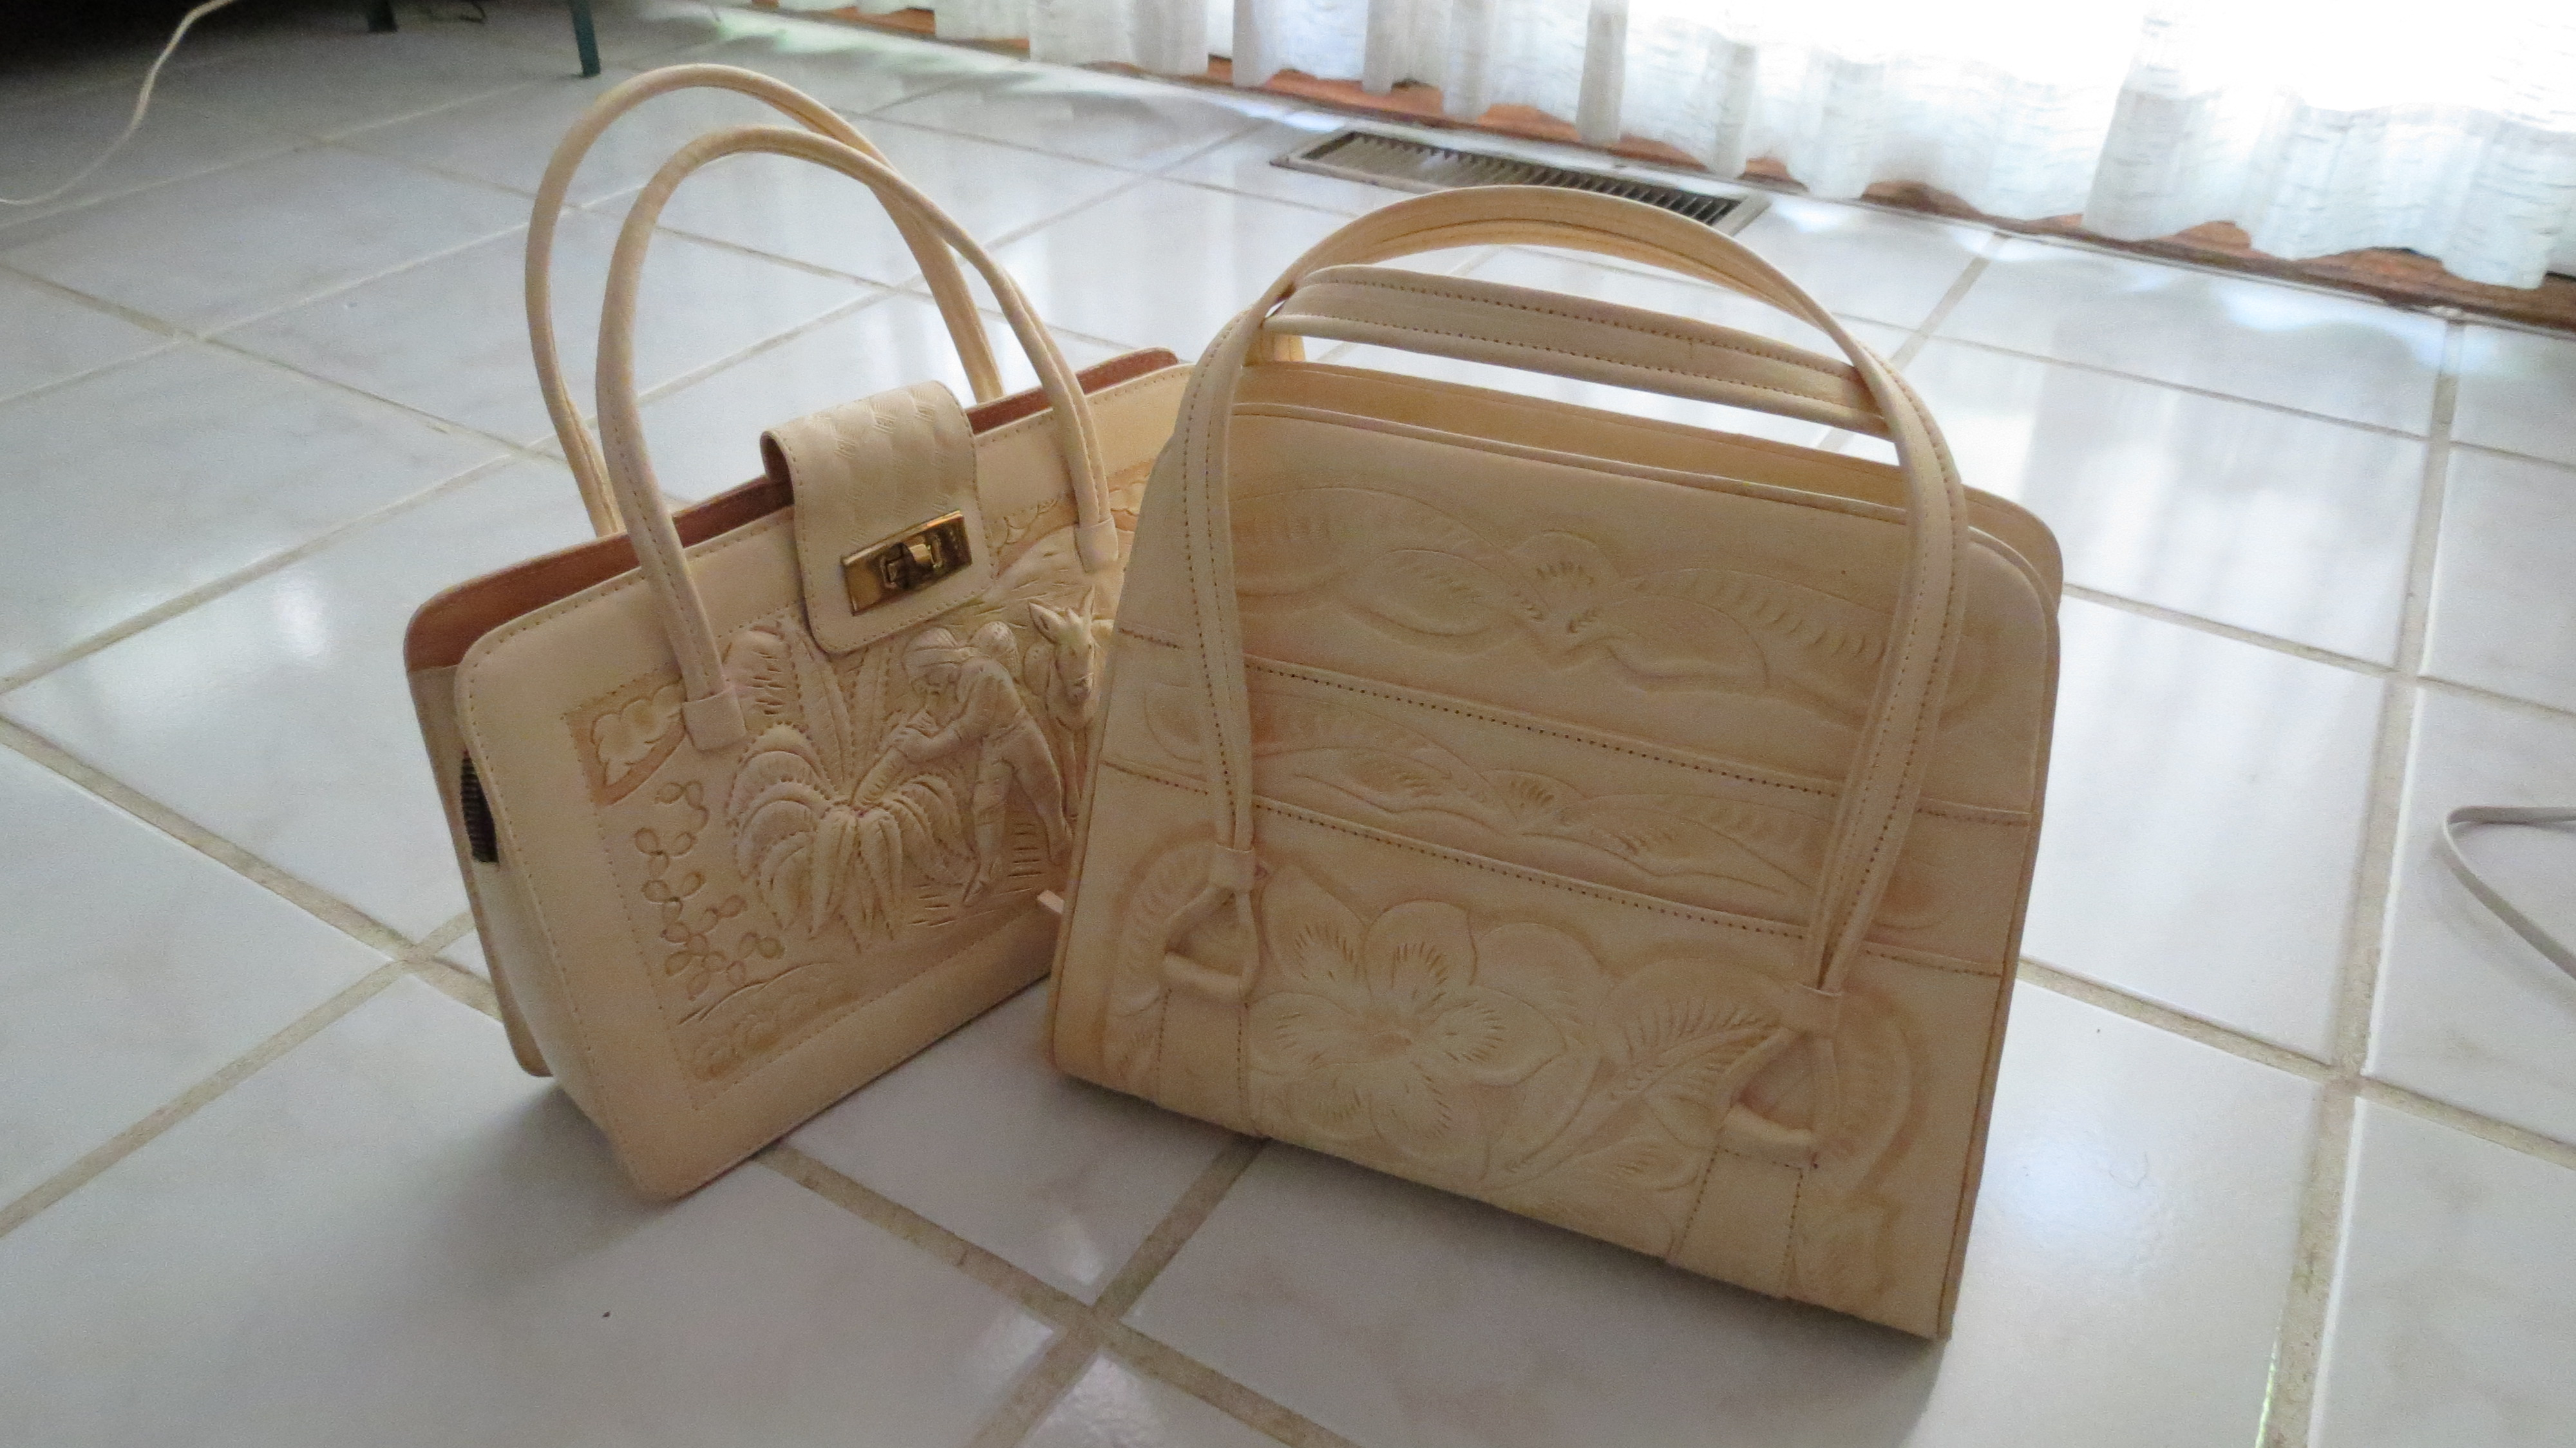 BEAUTIFULLY TOOLED LEATHER BAGS FROM MEXICO - CIRCA 1960'S - 1980'S